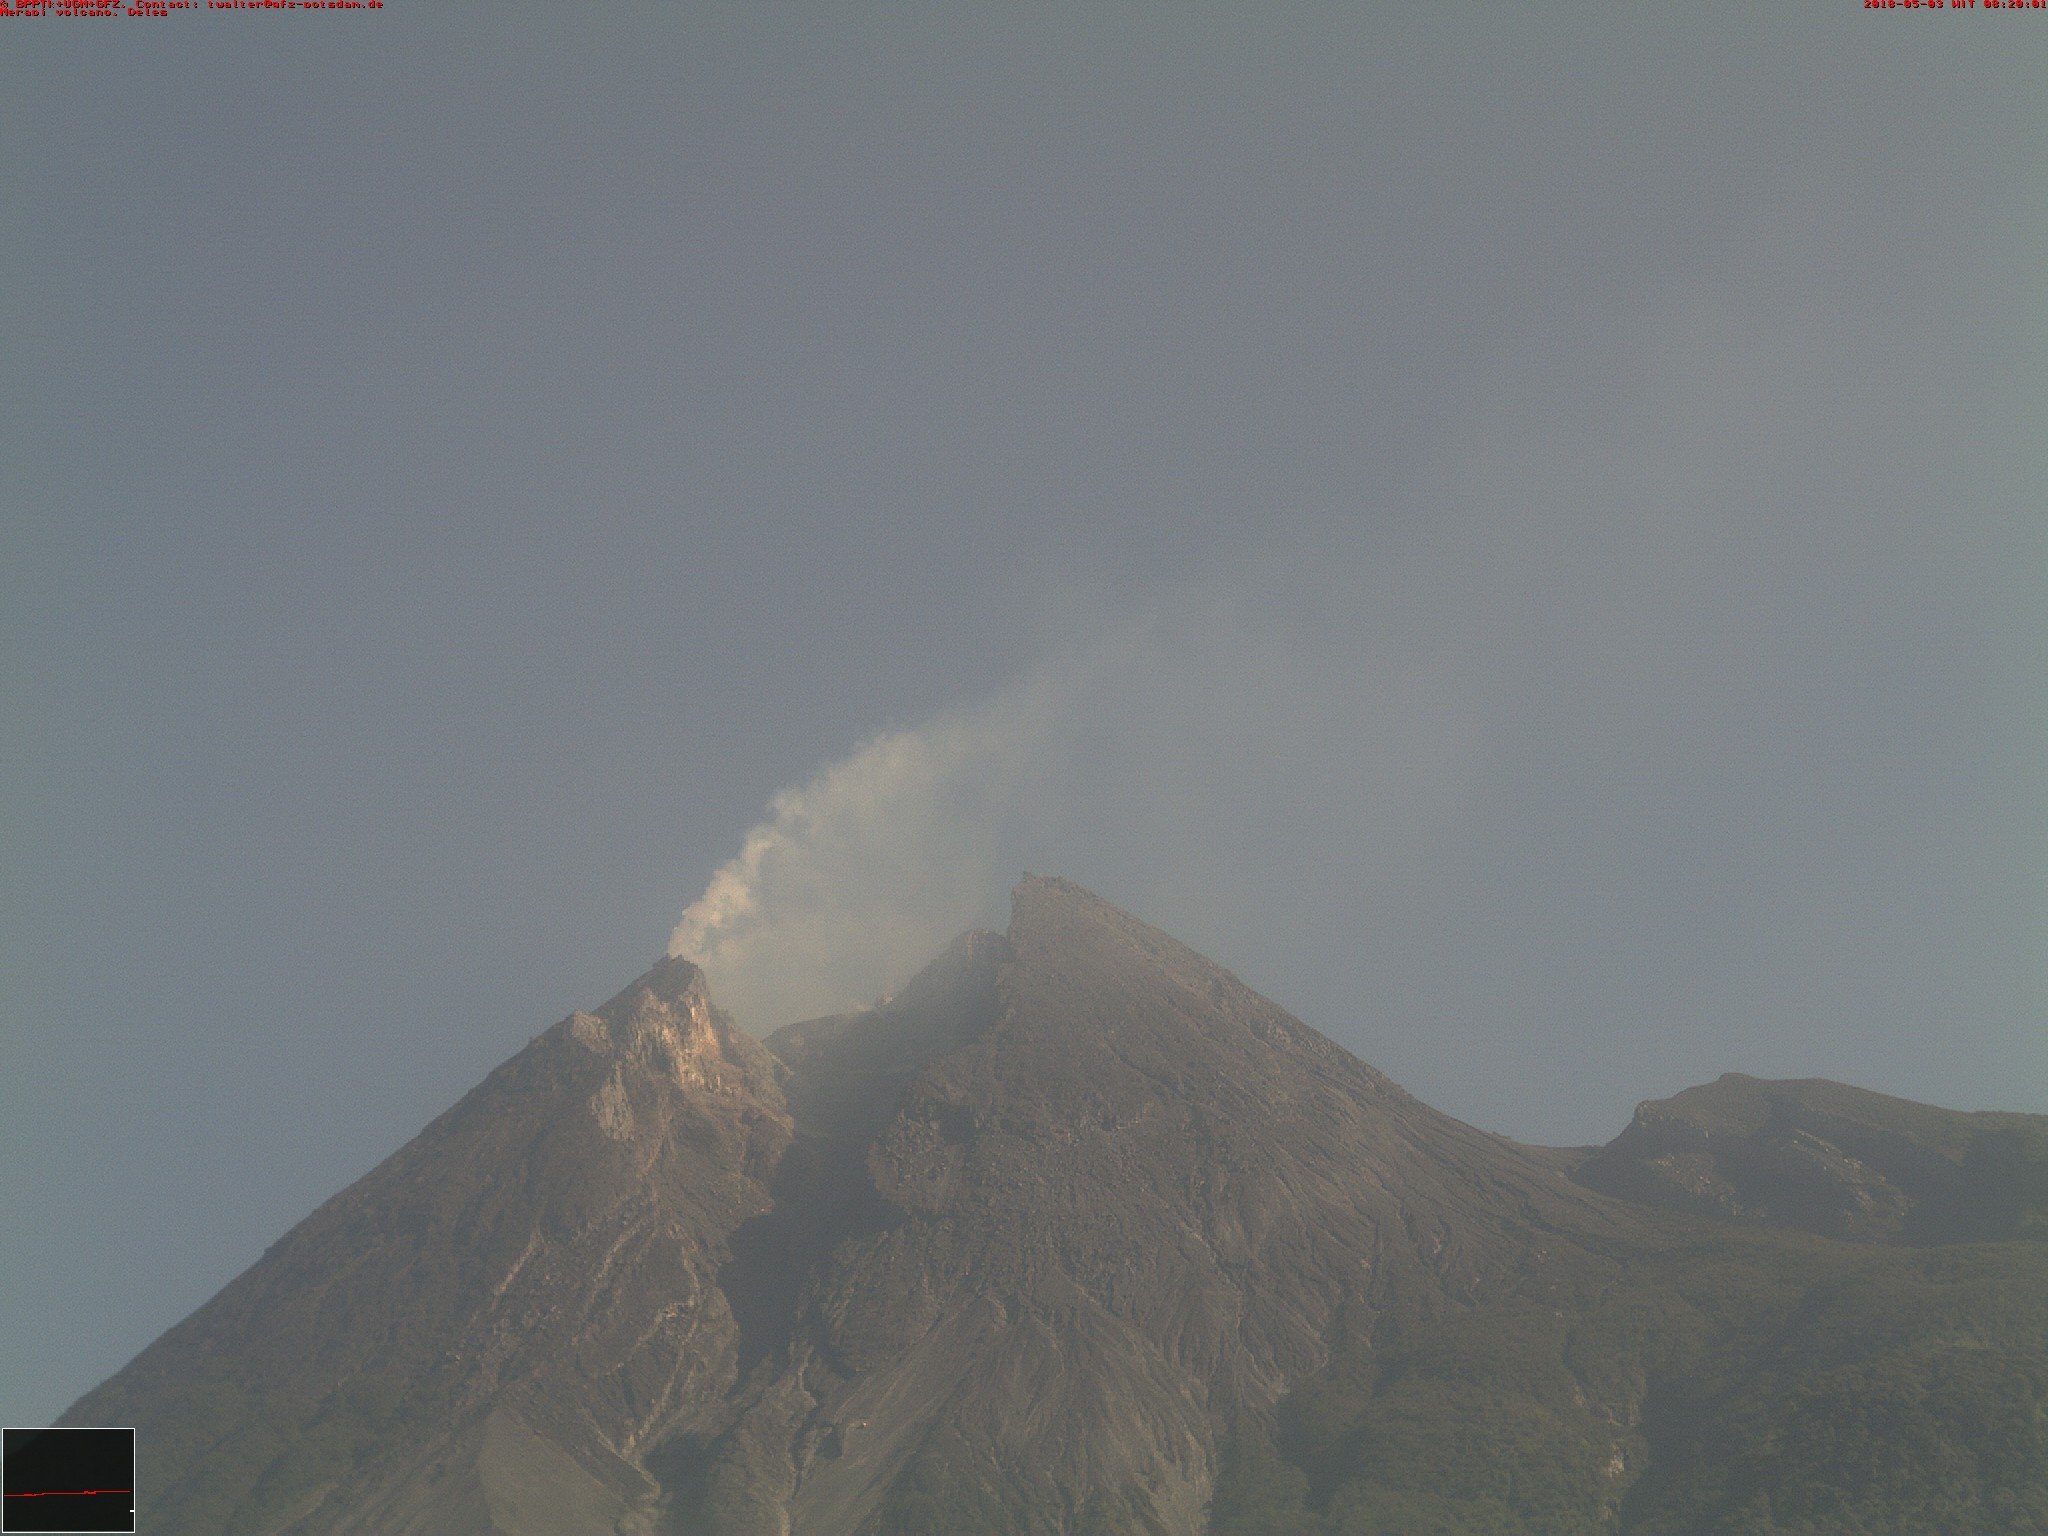 Photographs of the Merapi from before and during the eruption on 11 May 2018 speak for the three-phase model: Gas footsteps can be seen on the Feuerberg on 3 May.